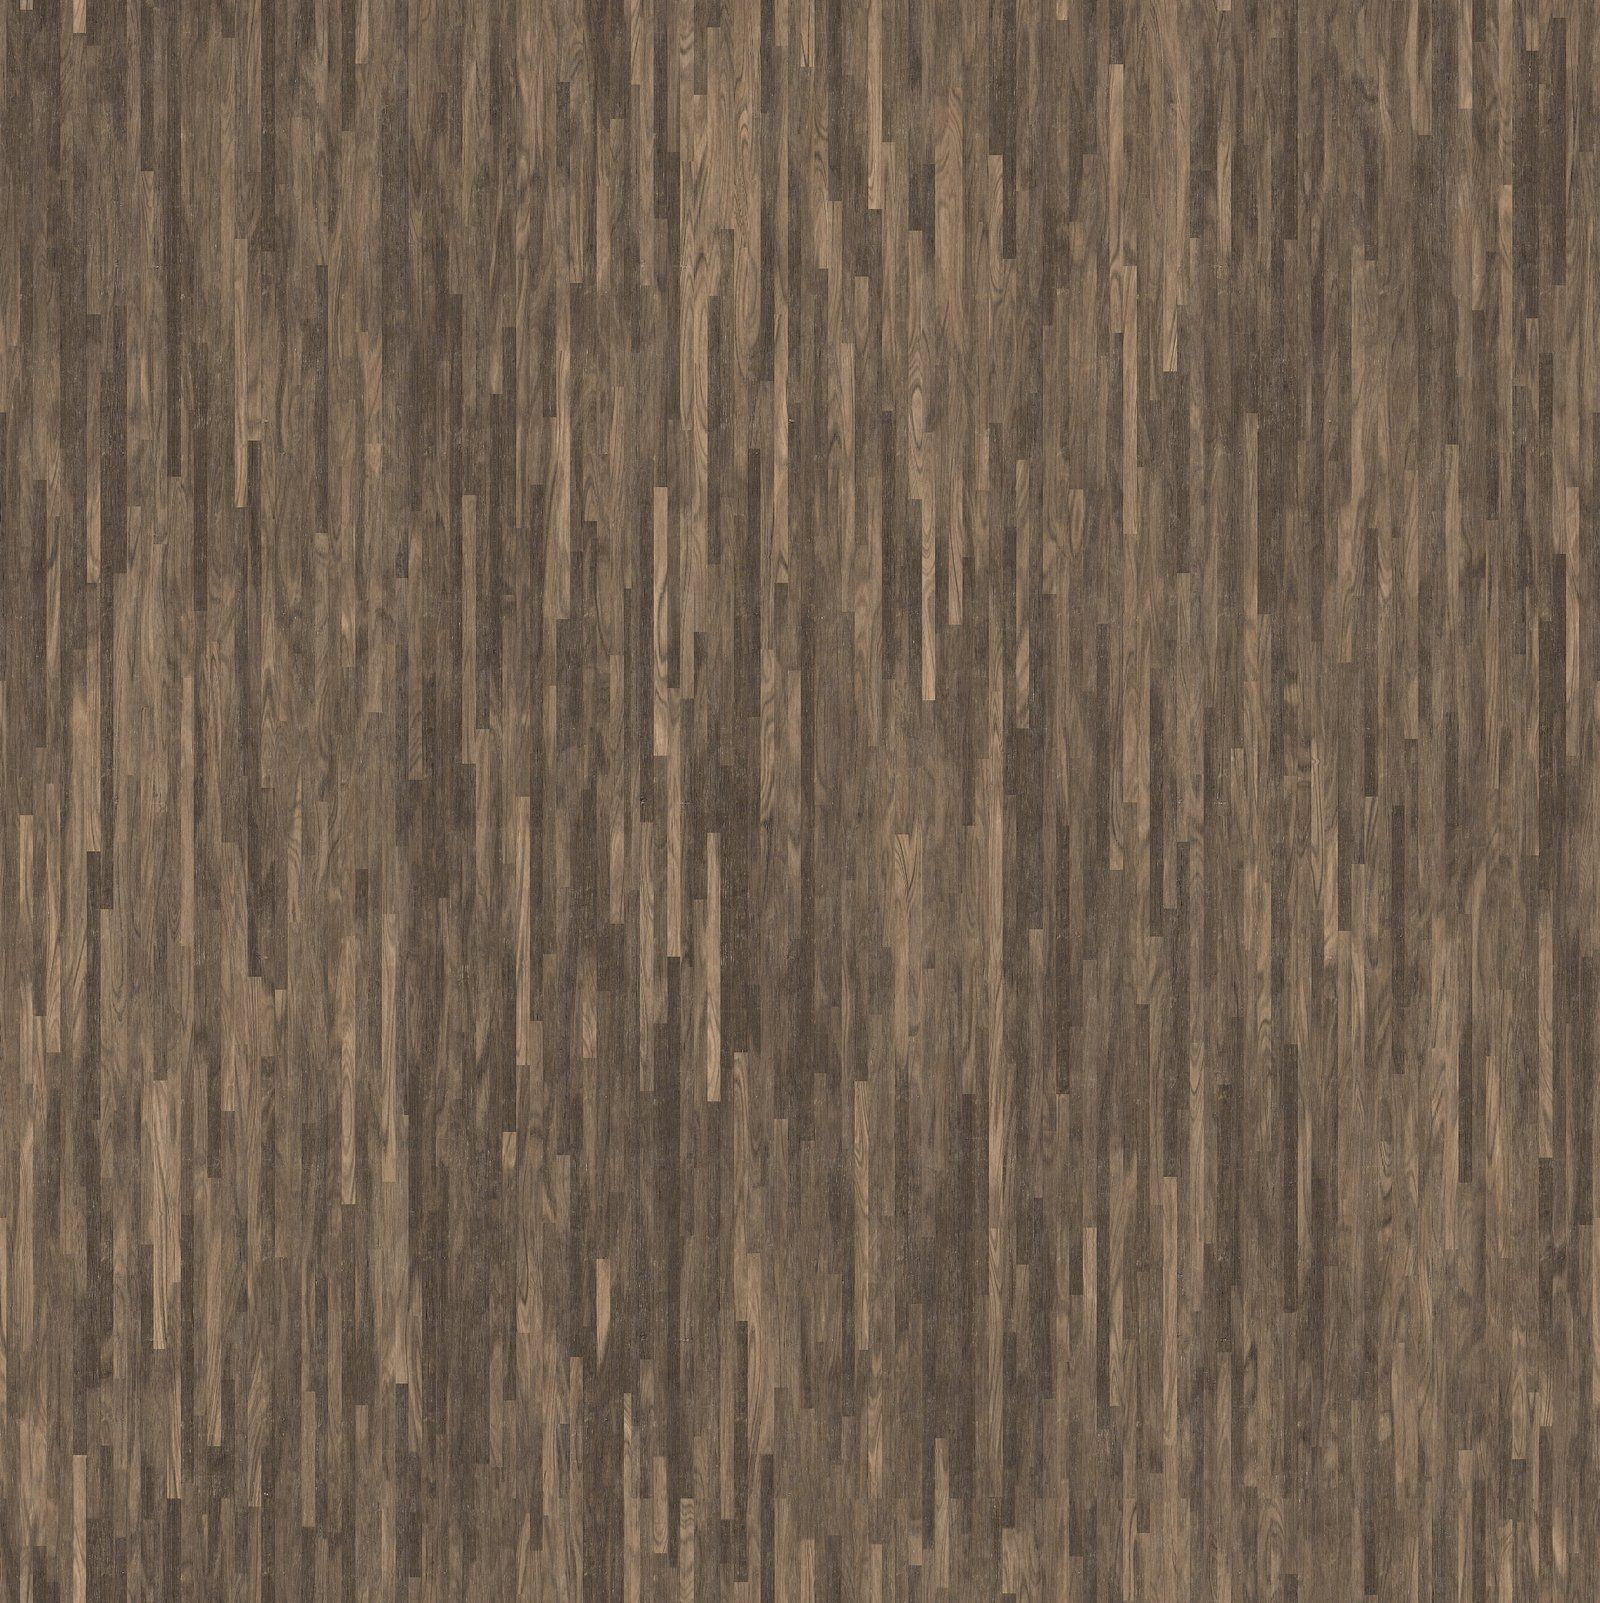 Wood Floor - Seamless by AGF81.deviantart.com on @deviantART | texture ...